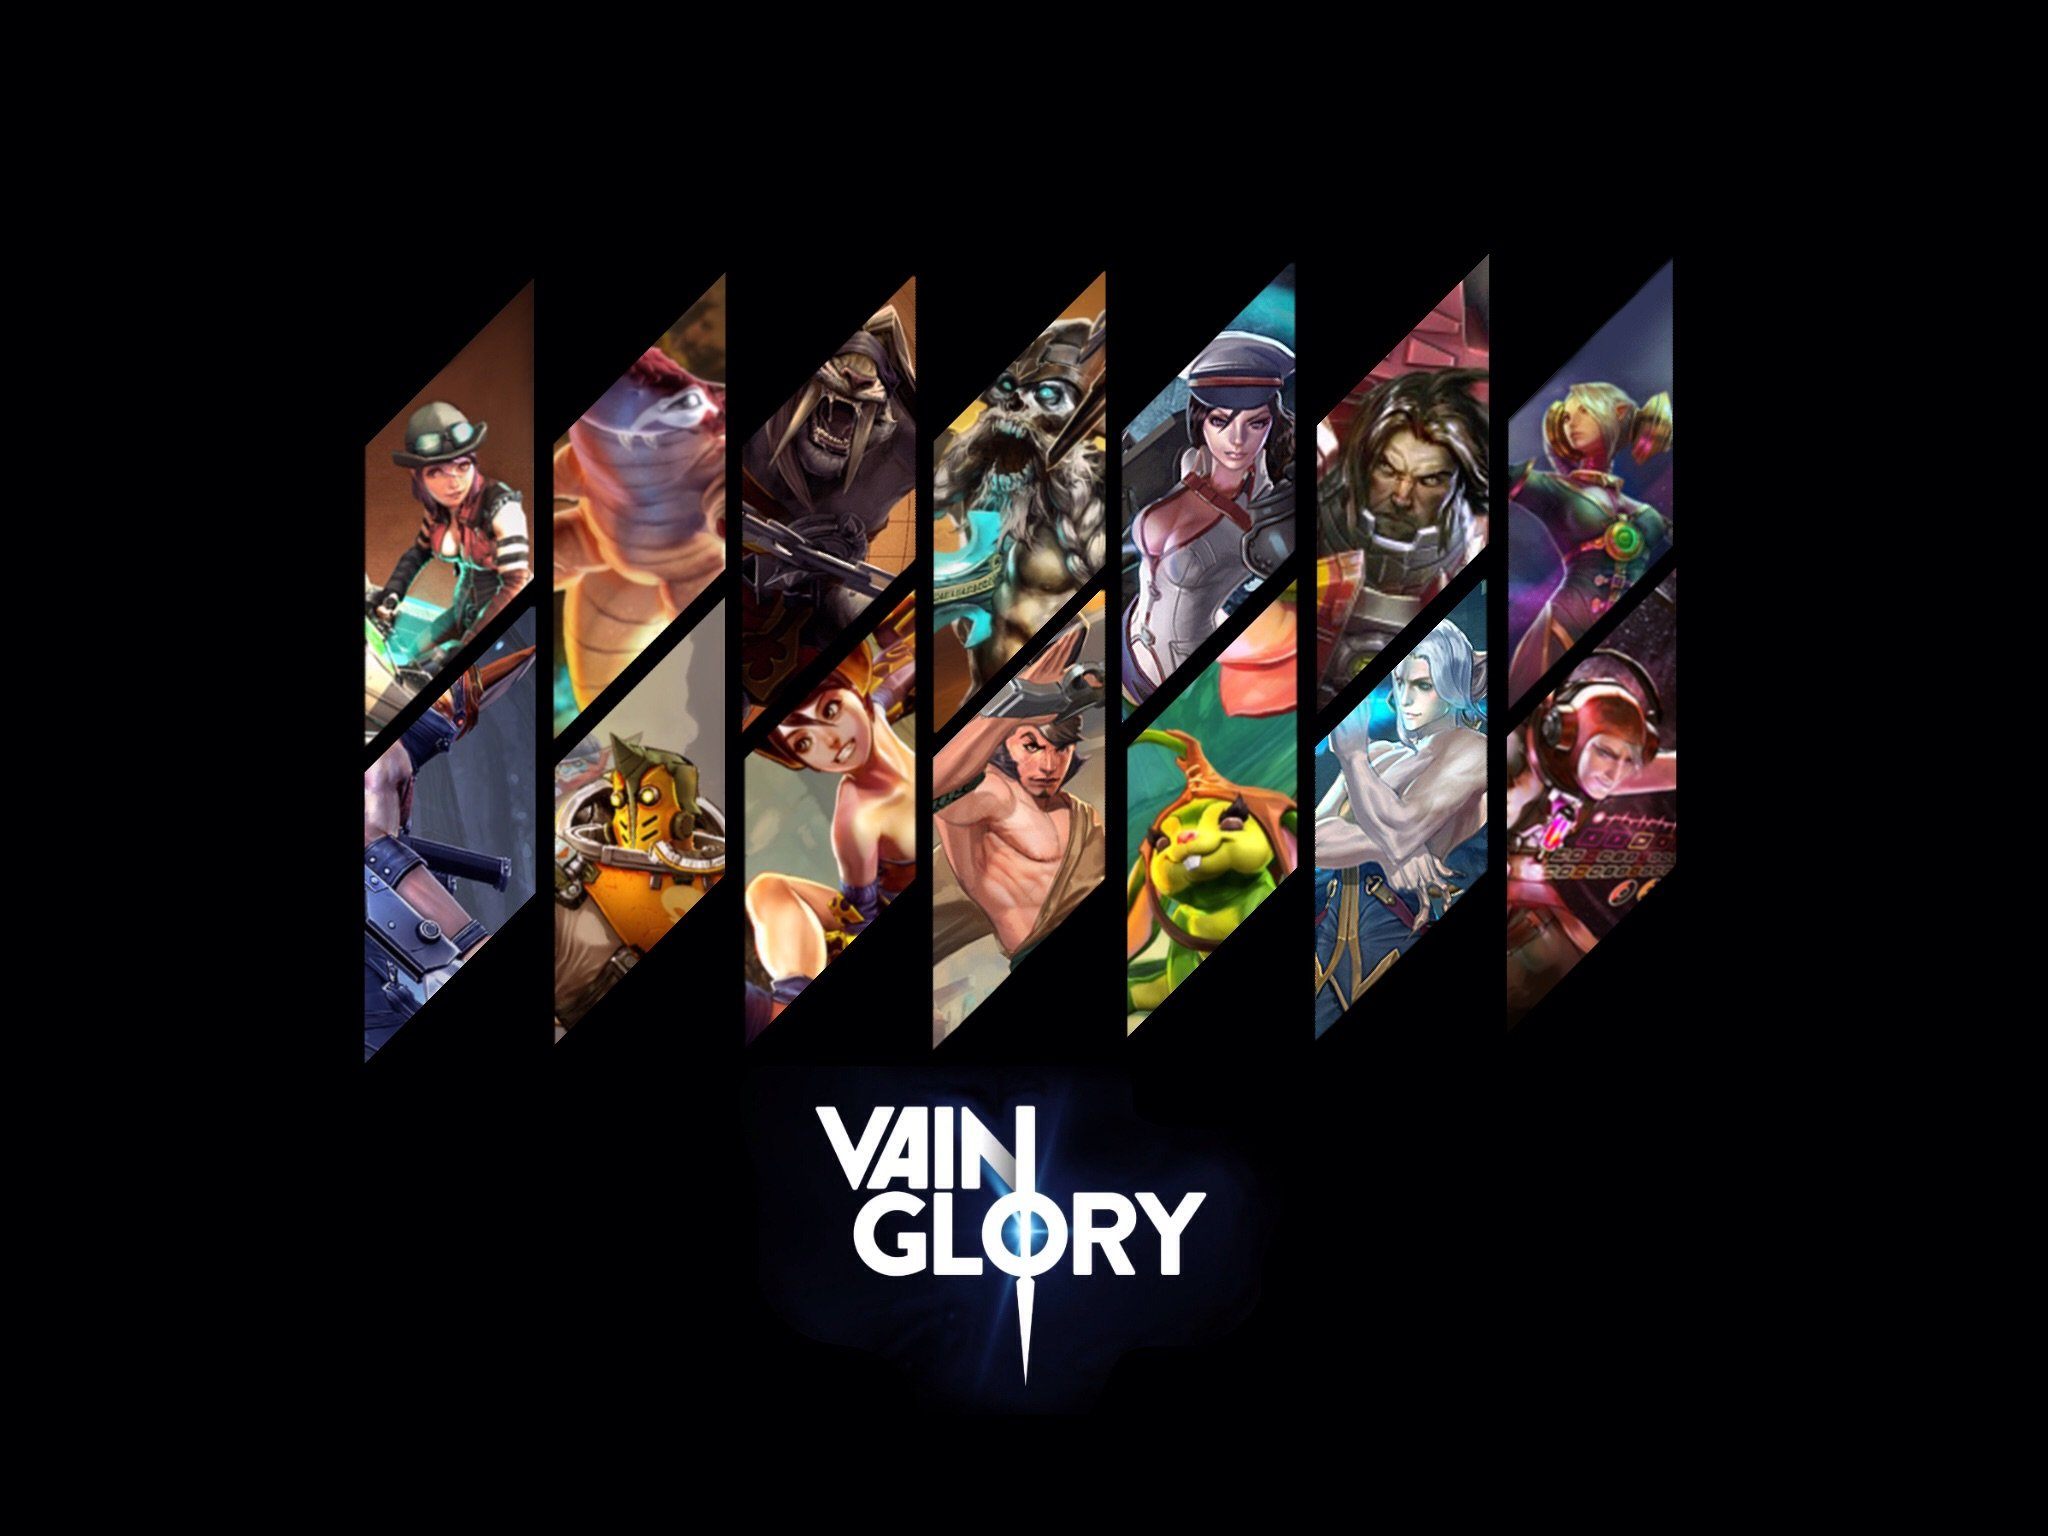 Wallpaper iphone vainglory - Vainglory Moba Online Fighting Fantasy 1vainglory Warrior Action Wallpaper